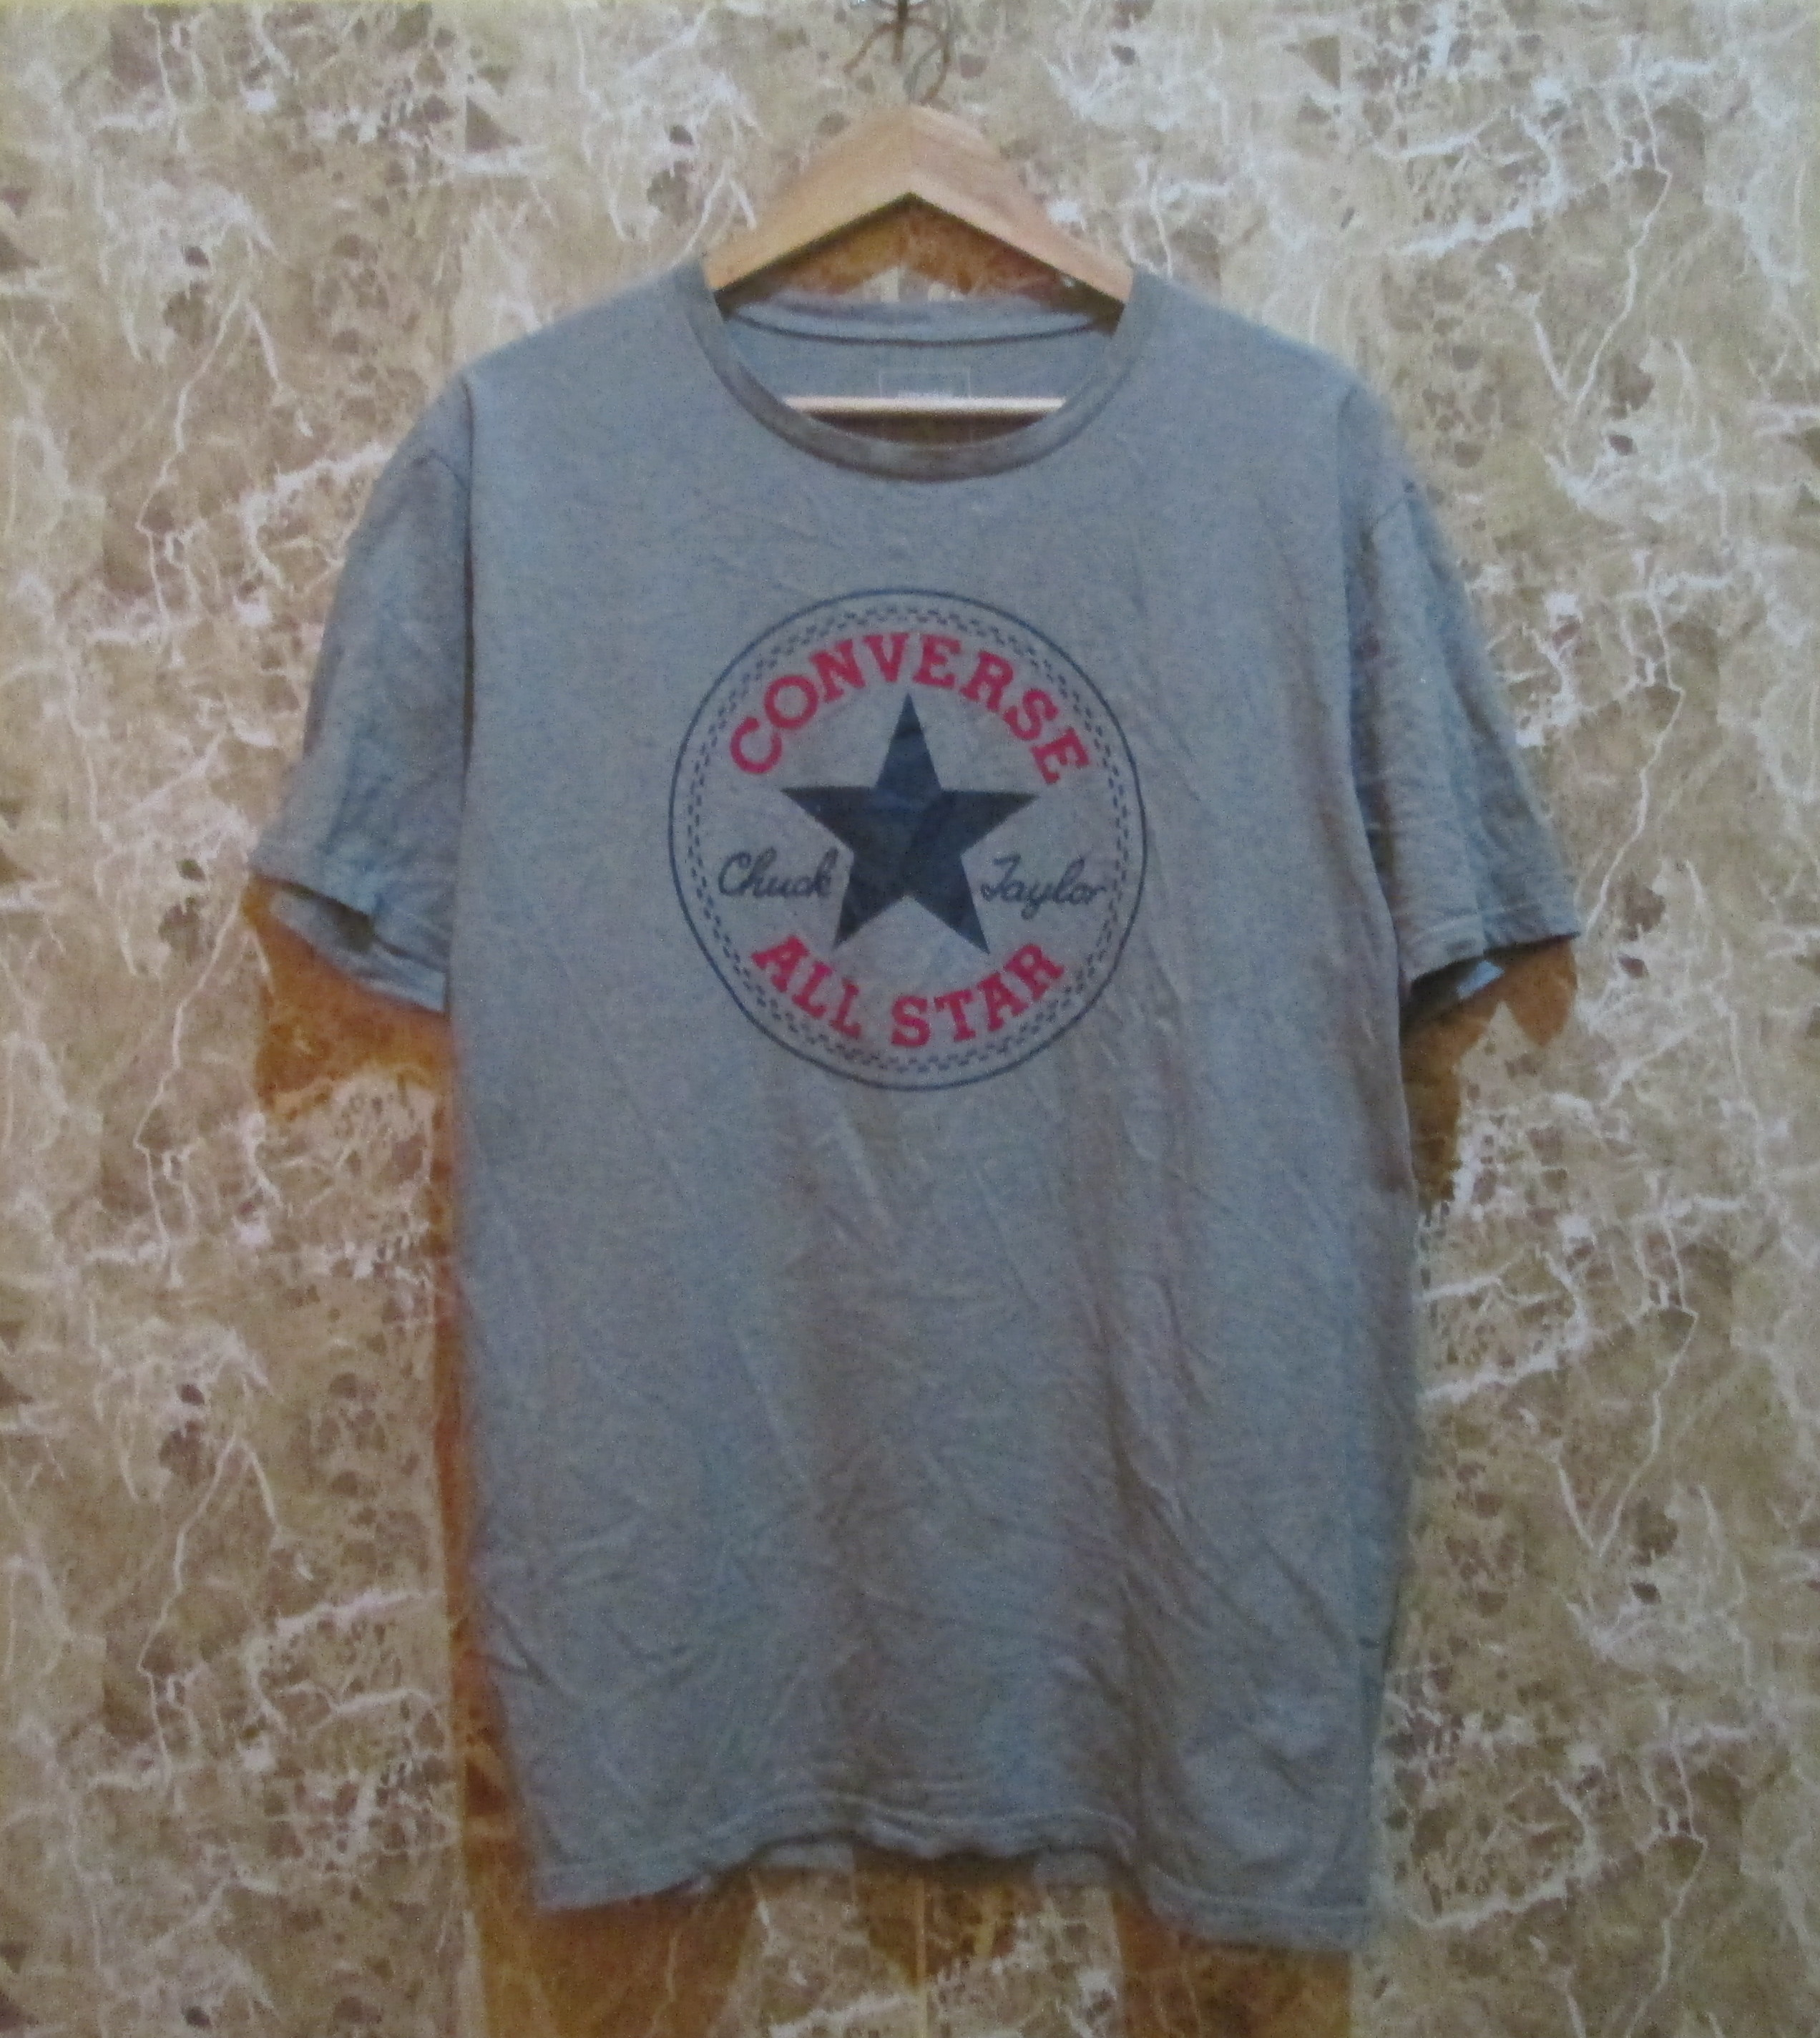 Converse Chuck Taylor All Star Vintage T shirt